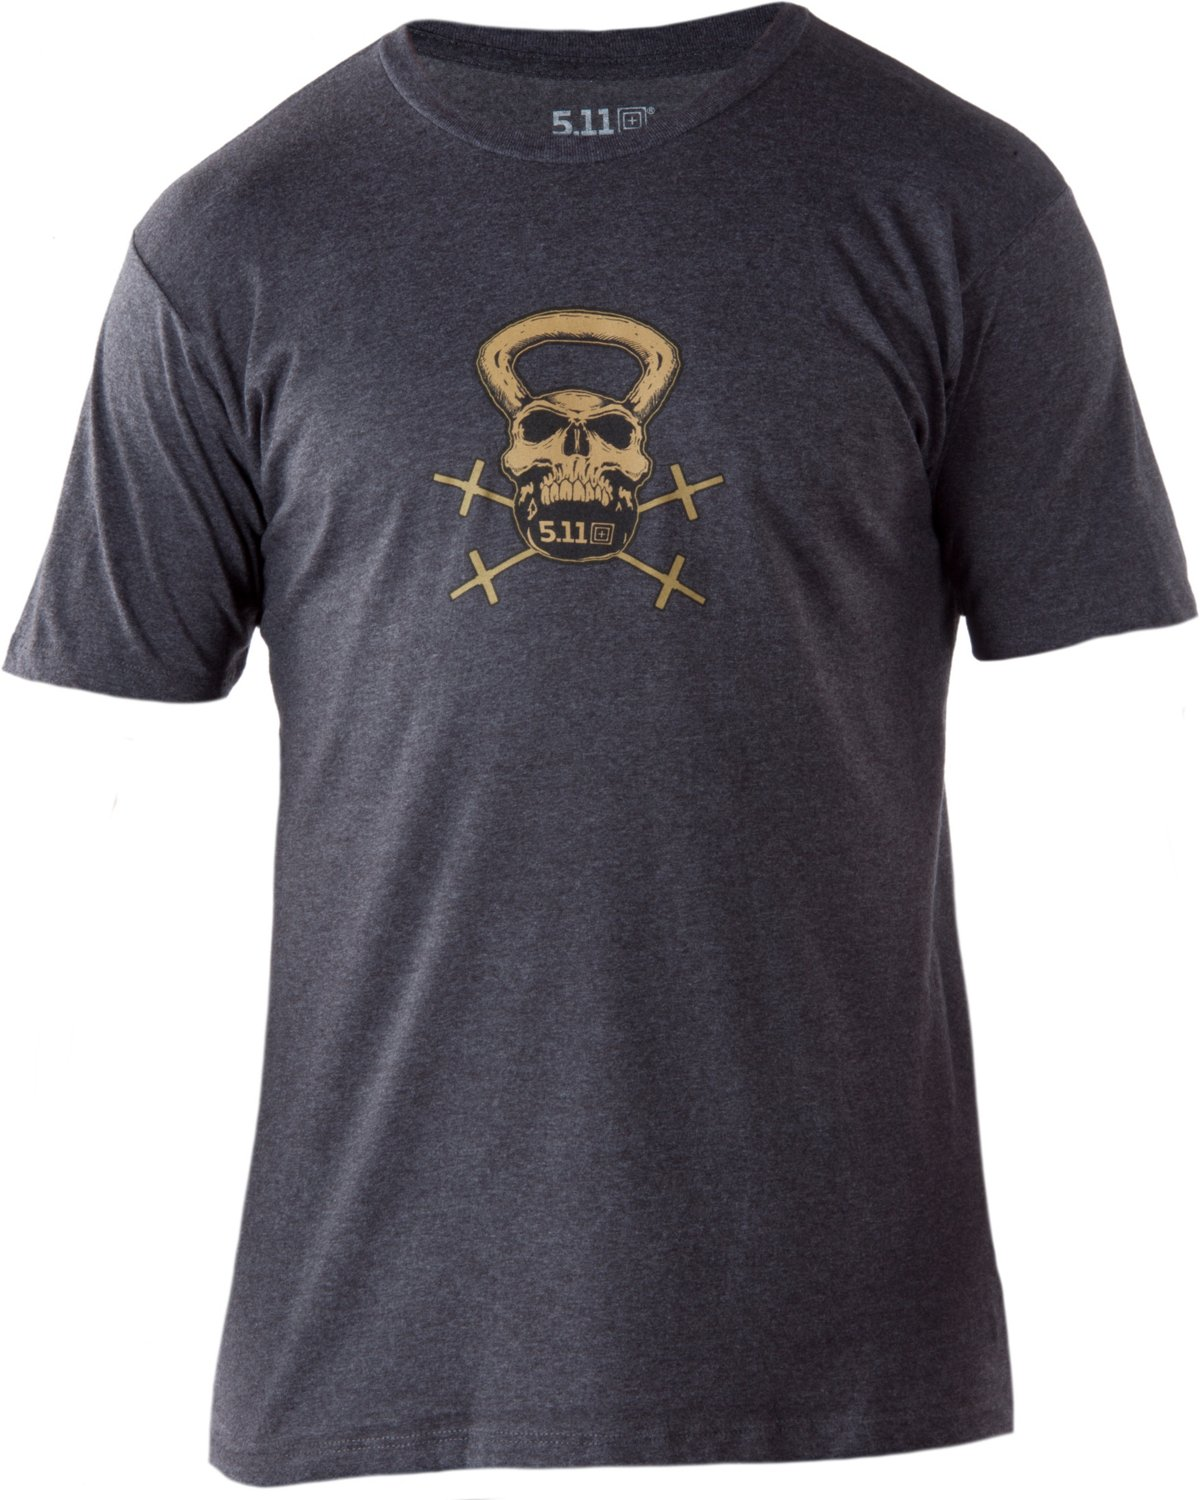 392adb6a6517b Display product reviews for 5.11 Tactical Men's RECON Skull Kettle Logo T- shirt